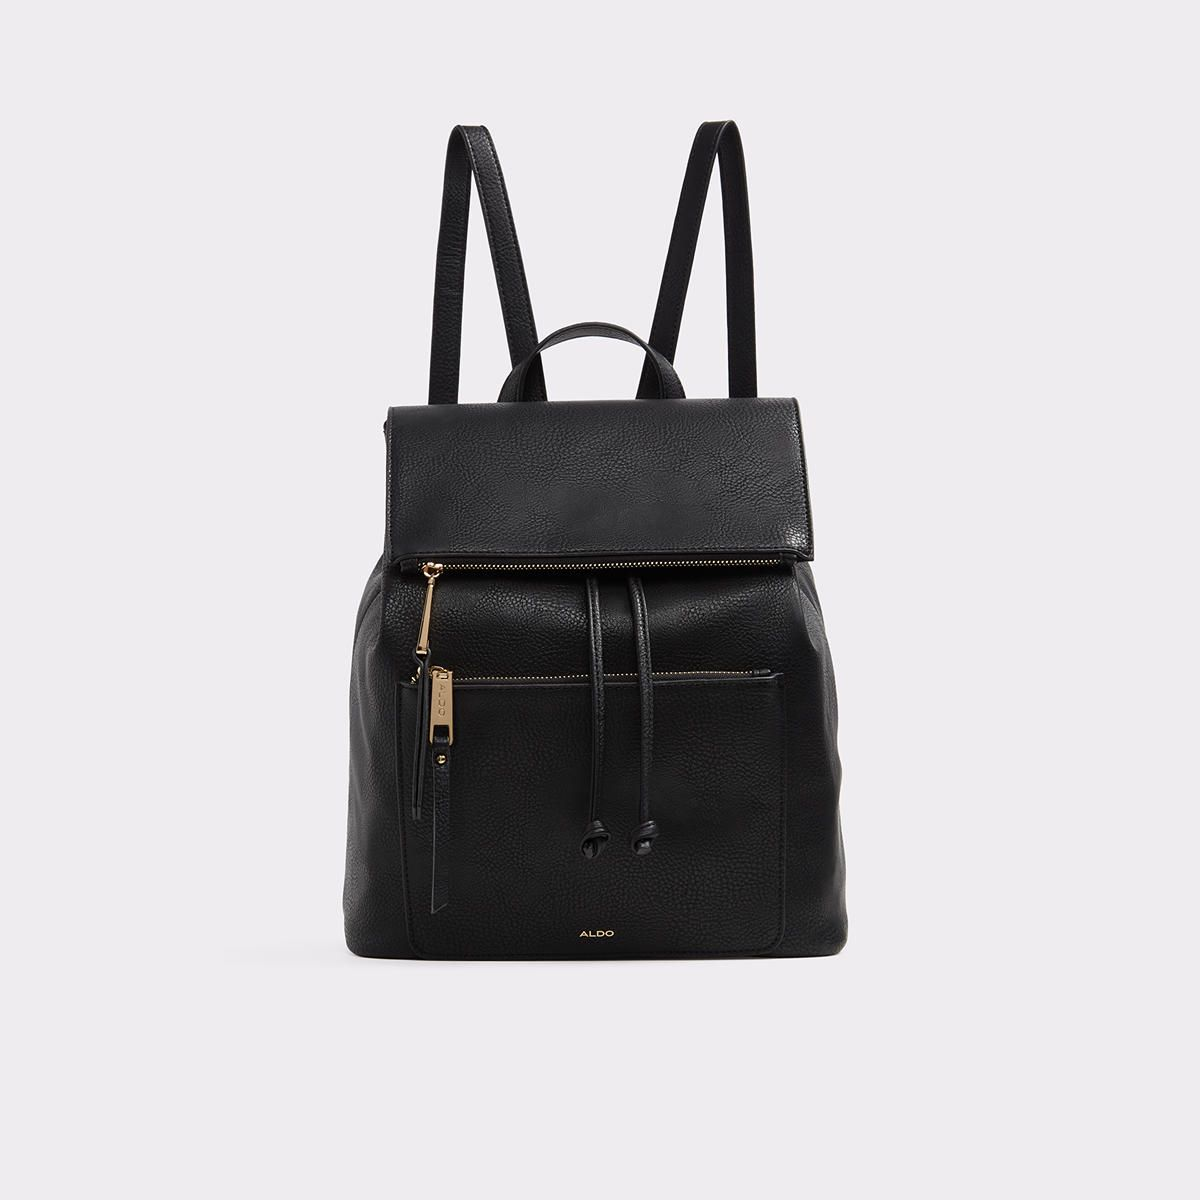 11dfae595 Ociraria For the ultimate urban look this season, an elegantly understated  backpack is the way to go. Featuring a drawstring knot detail and front  pocket ...